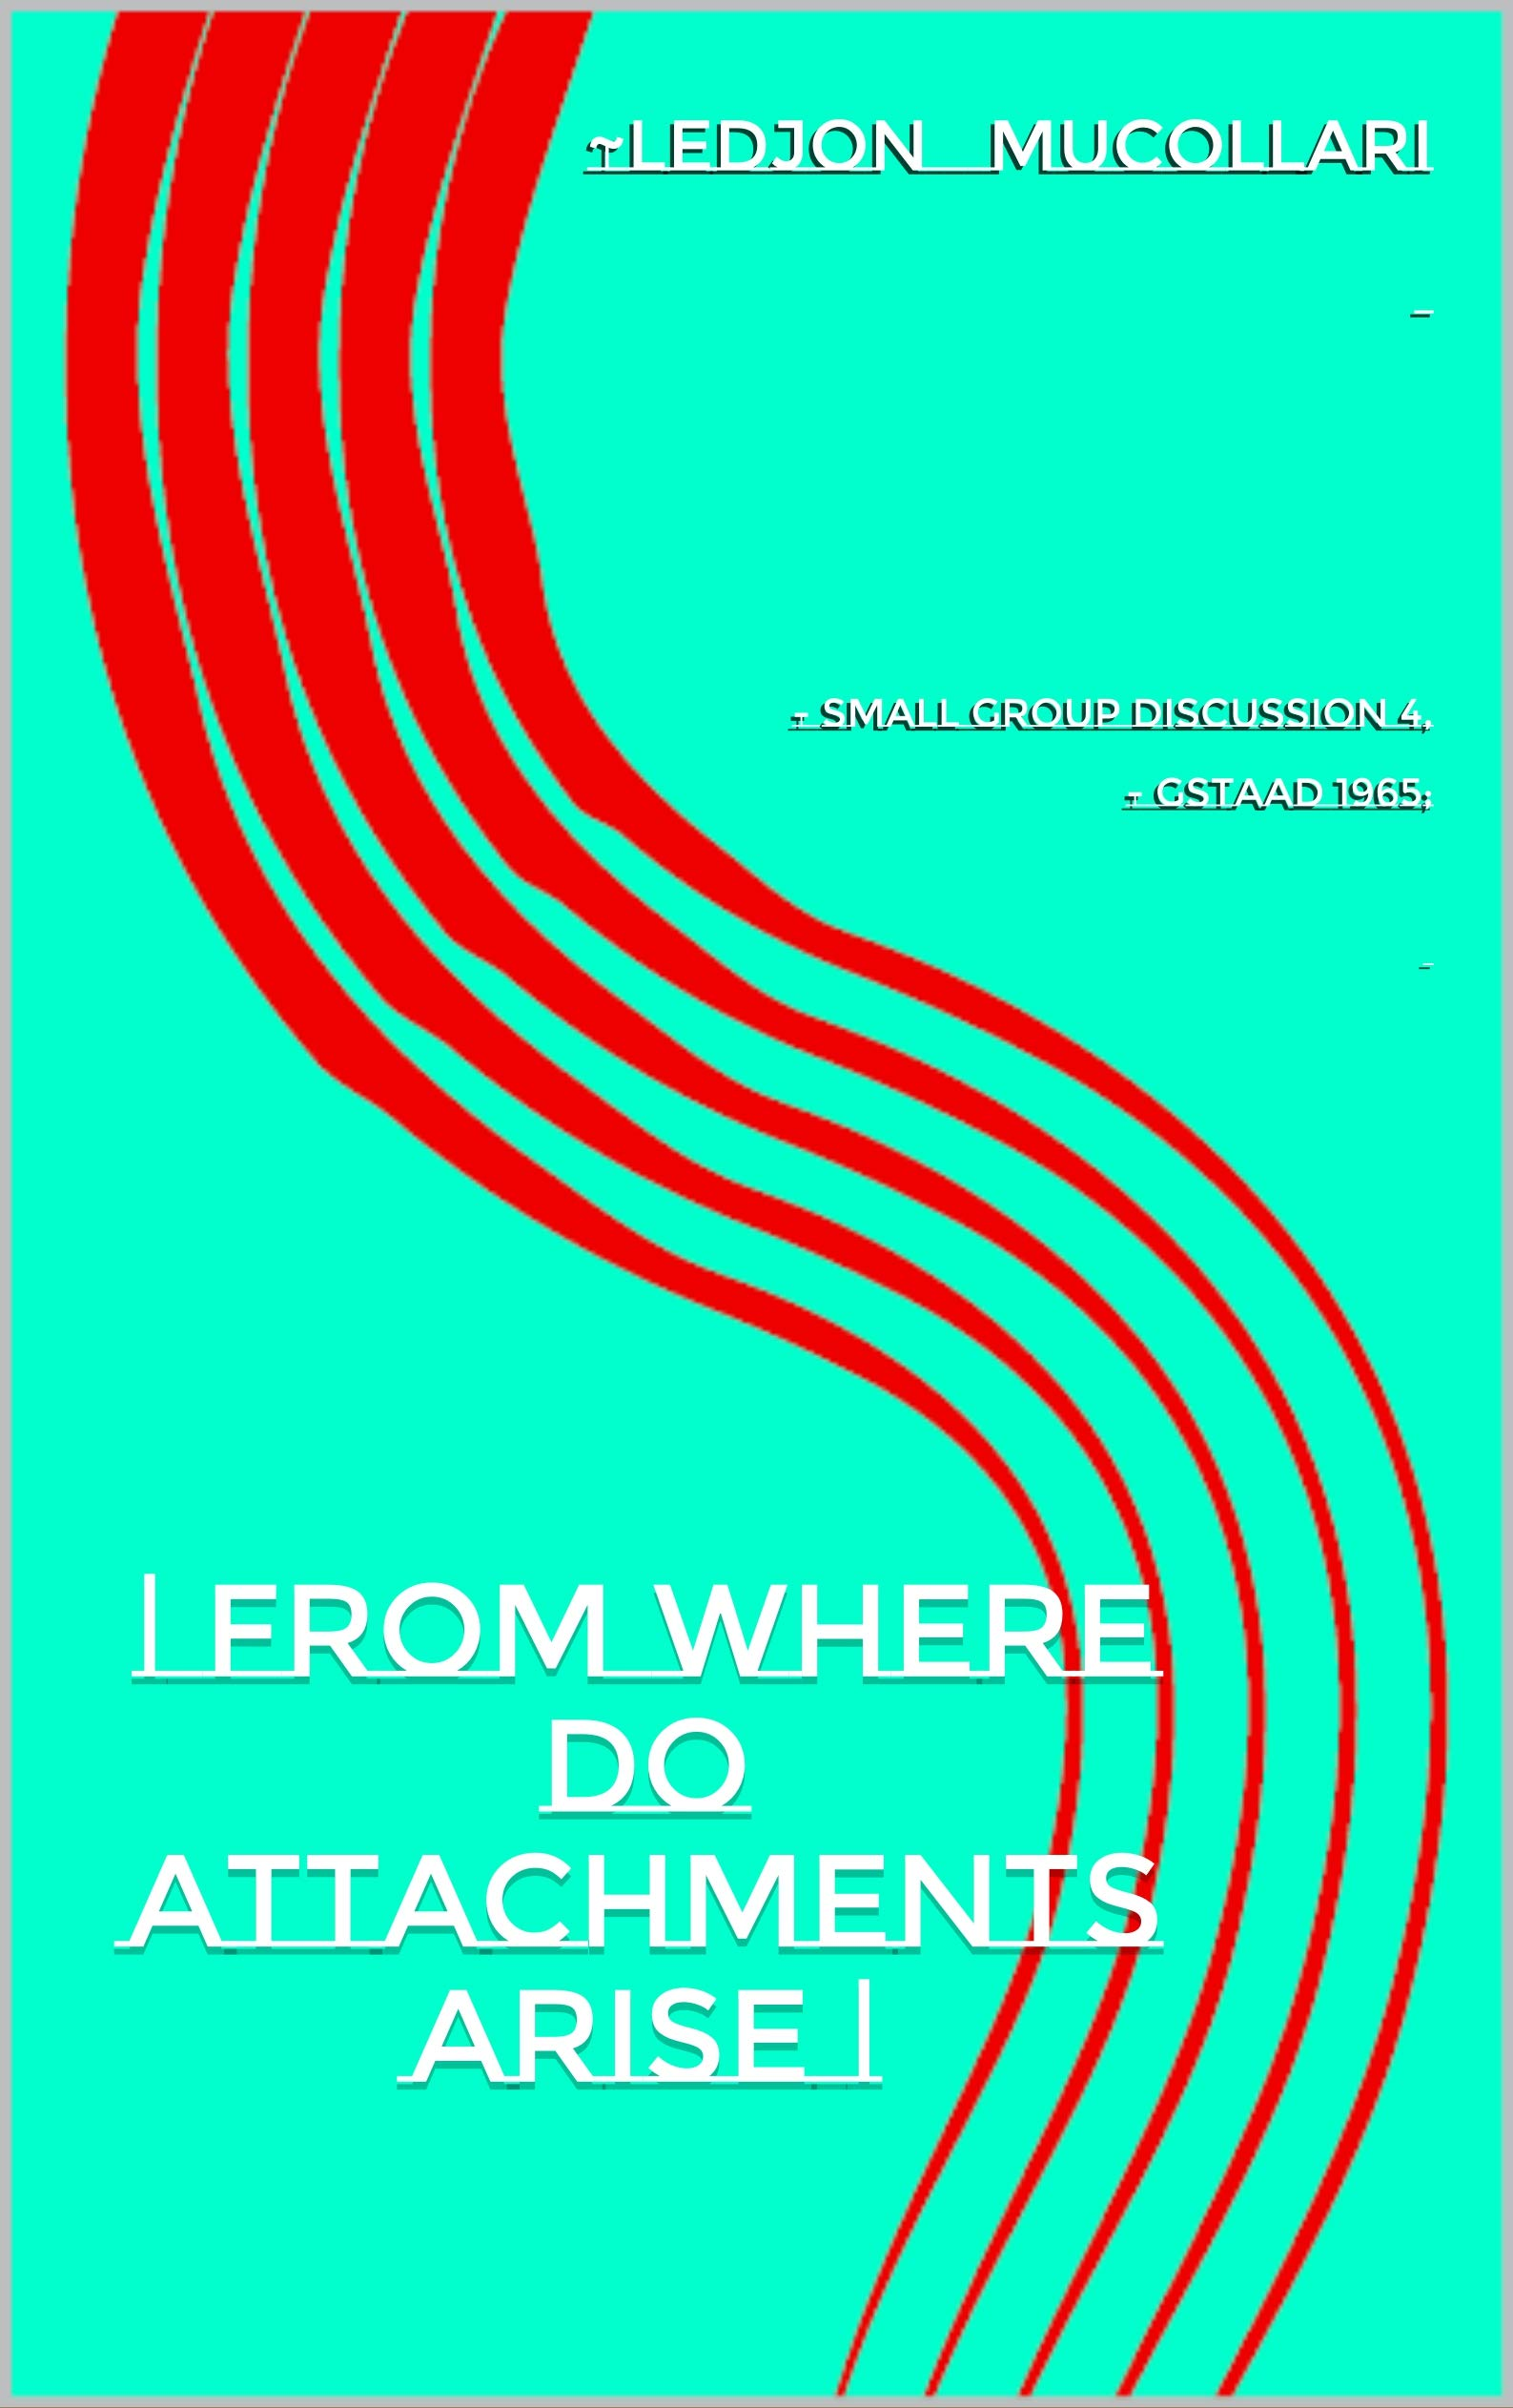   from where do attachments arise   : - Small Group Discussion 4, - Gstaad 1965;